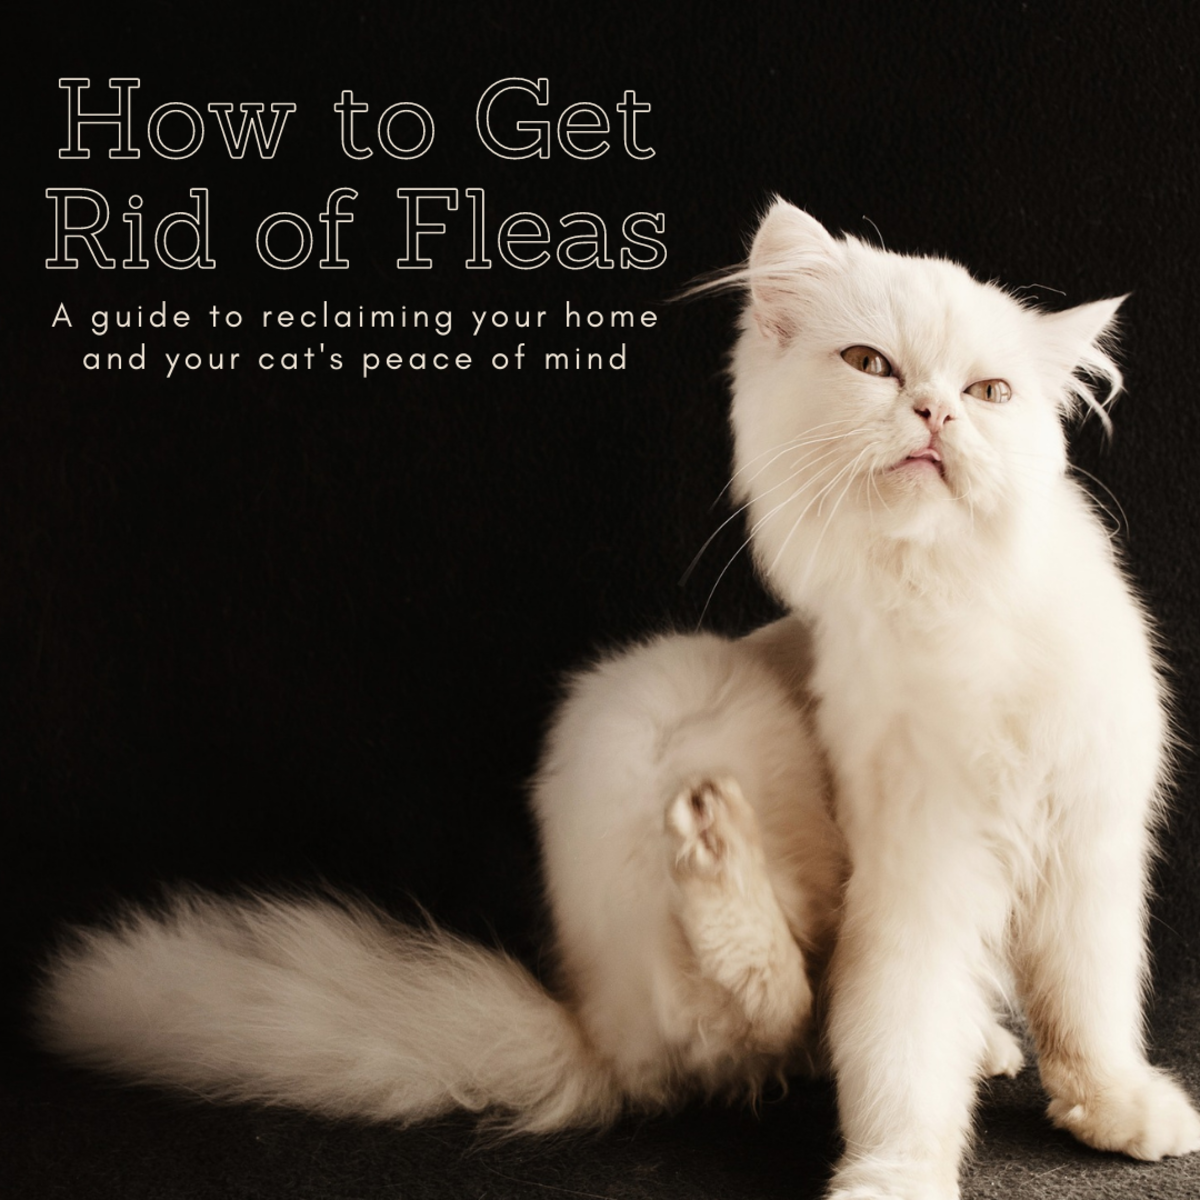 This article will take a look at some of the ways you can safely treatment your cat's flea problem without breaking the bank.